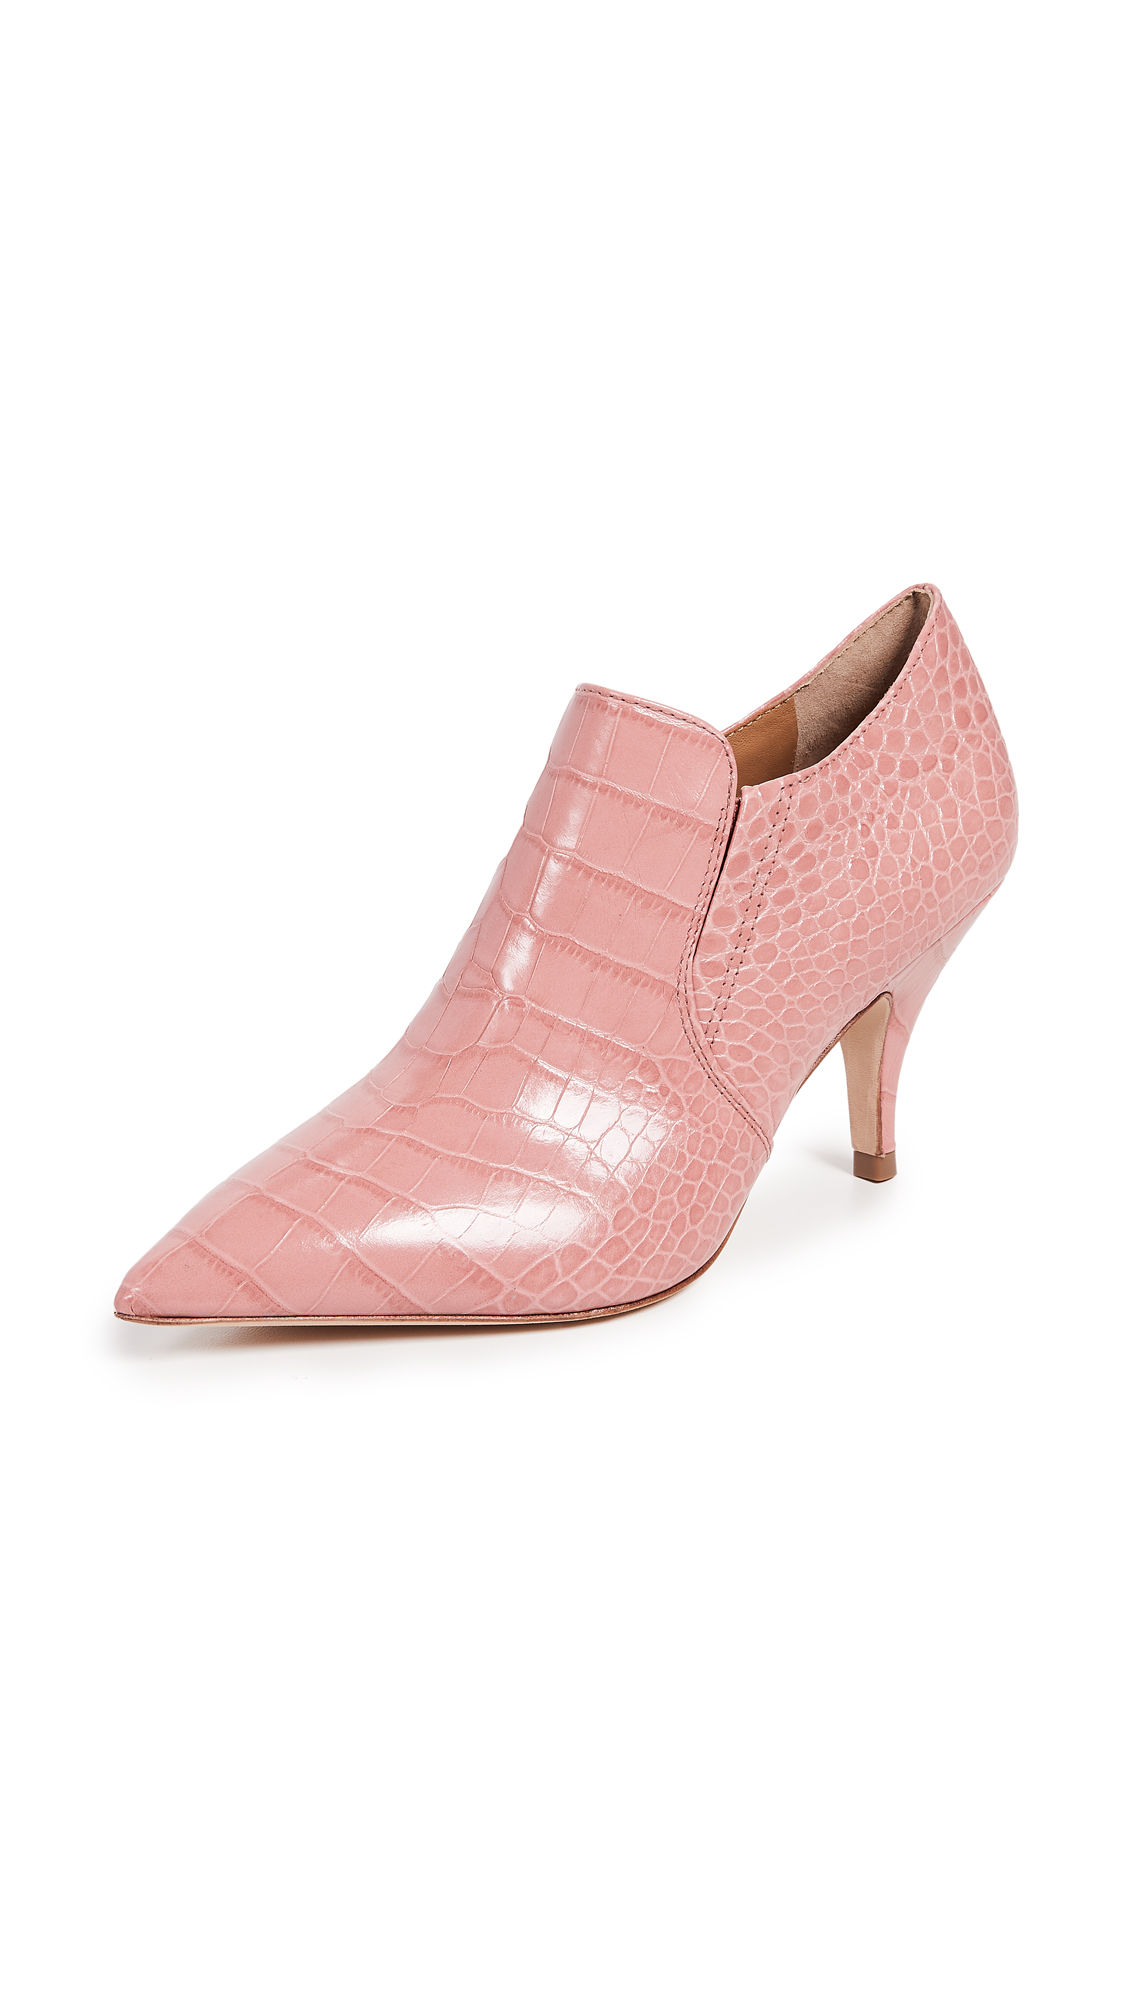 Tory Burch Georgina 80mm Booties - Elephant Pink